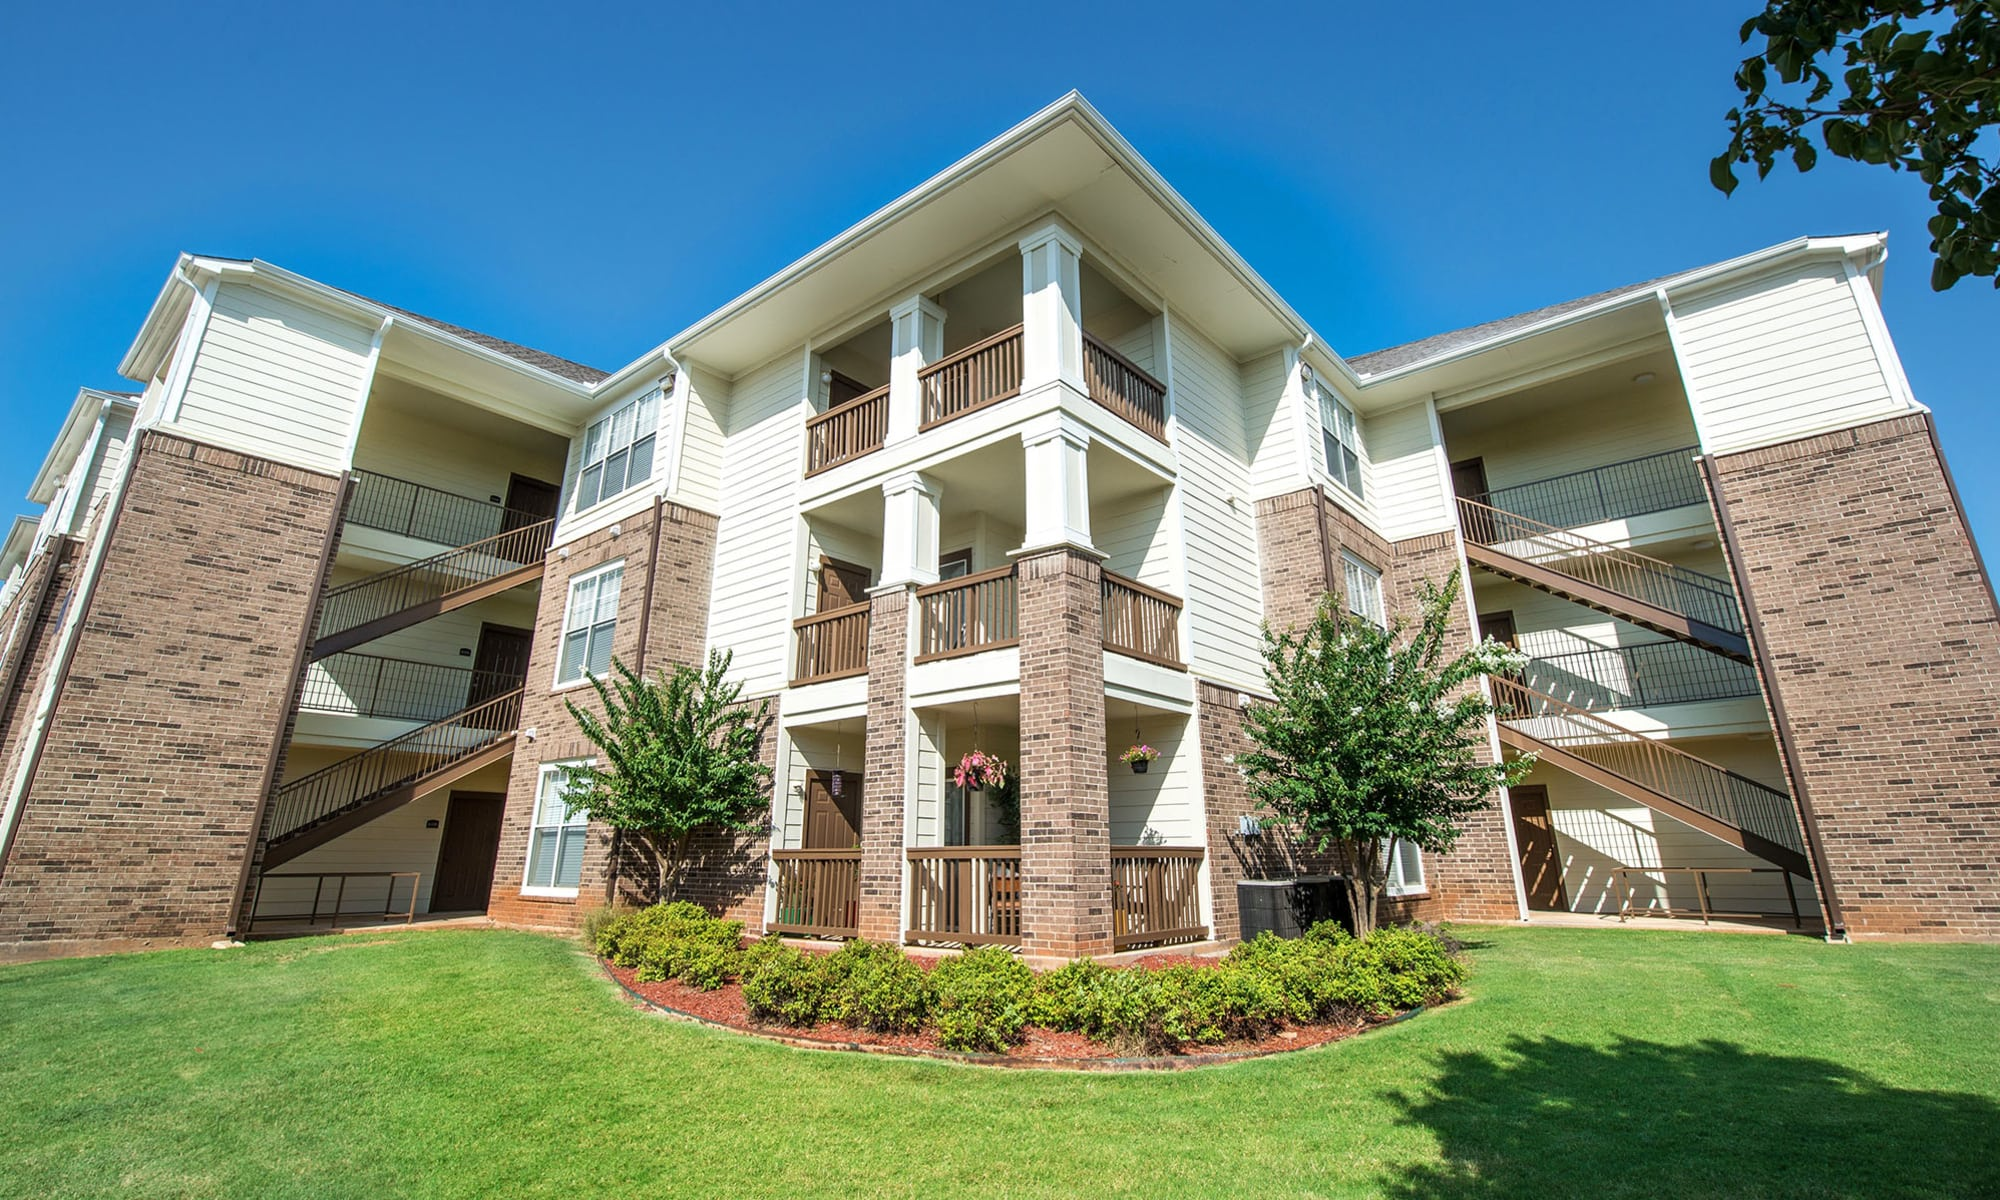 Exterior of apartments in Oklahoma City